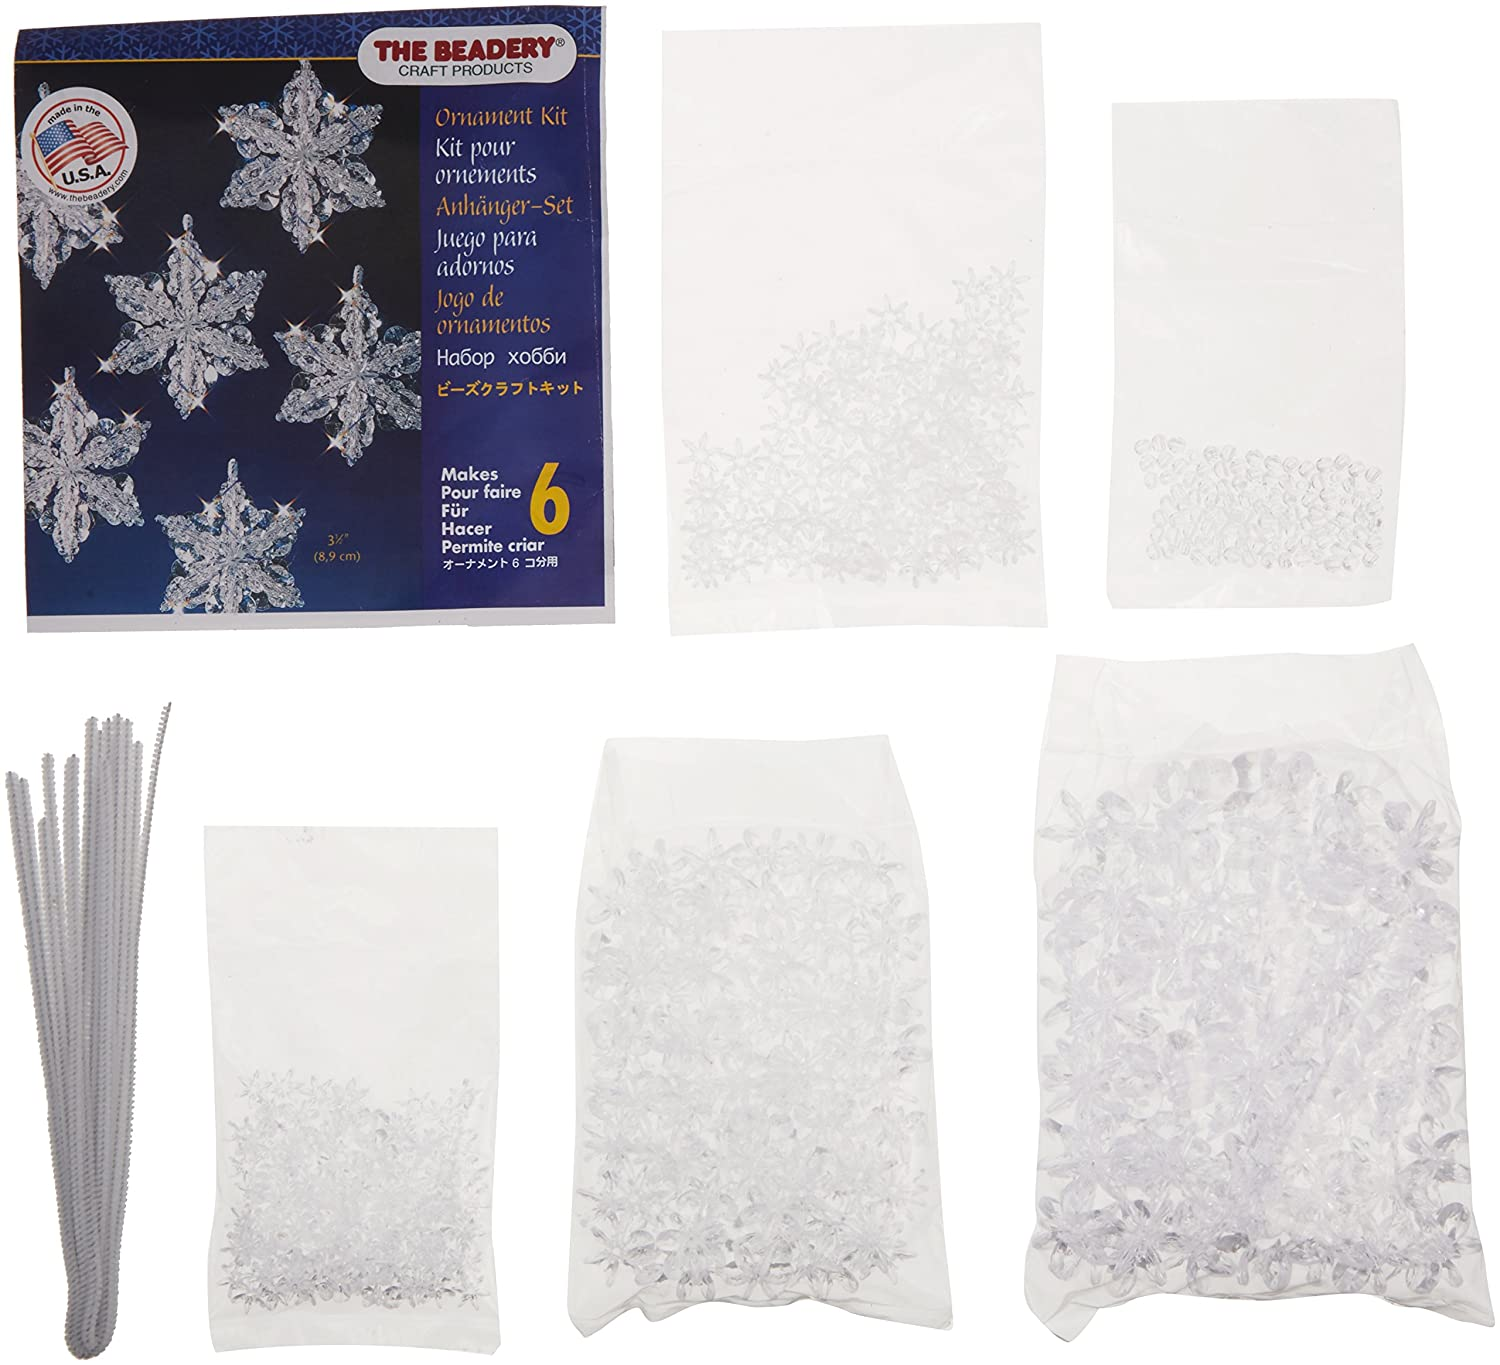 Beadery Plastic Holiday Beaded Ornament Kit Snow Crystals 3.5-inch Makes 6 BOK-5532